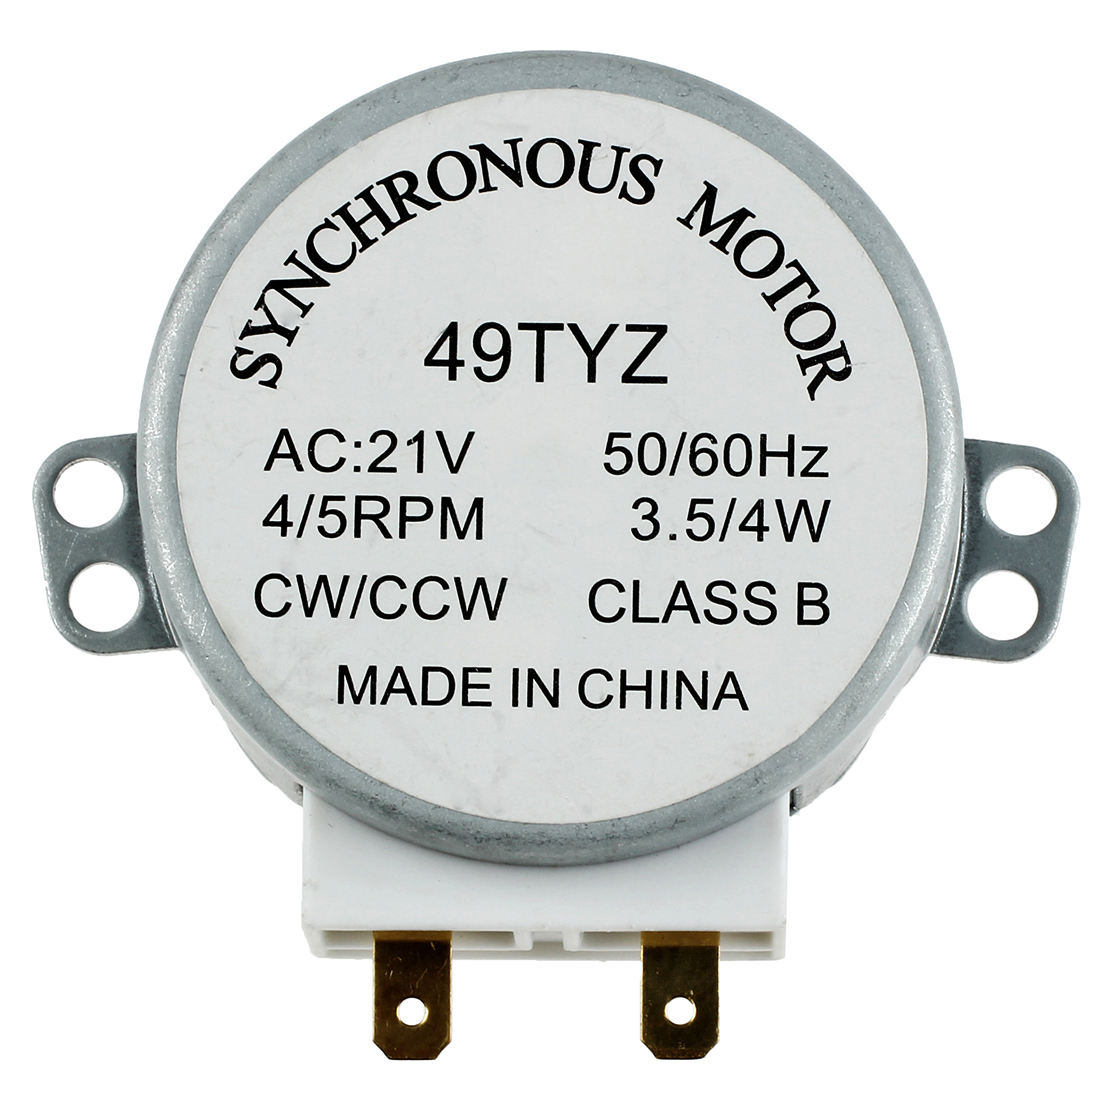 Hot sale mini  wave Oven Turntable Synchronous Motor 3W 5/6RPM AC 21V 50/60HzHot sale mini  wave Oven Turntable Synchronous Motor 3W 5/6RPM AC 21V 50/60Hz